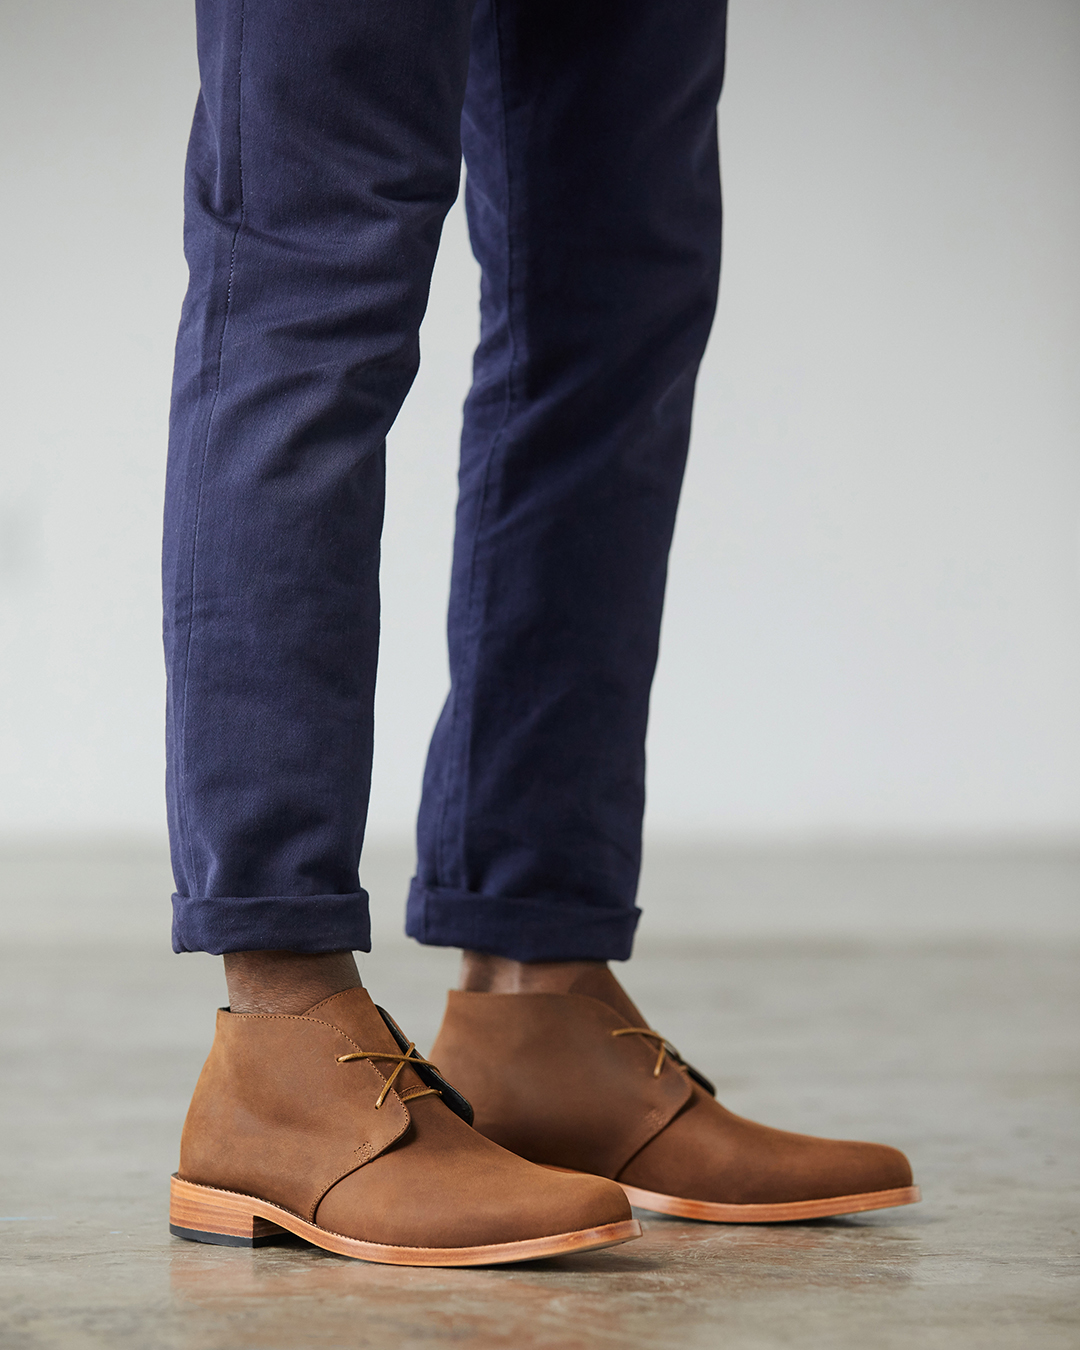 Nisolo Men's Luca Chukka Boot in oak | Handcrafted & Ethically Made